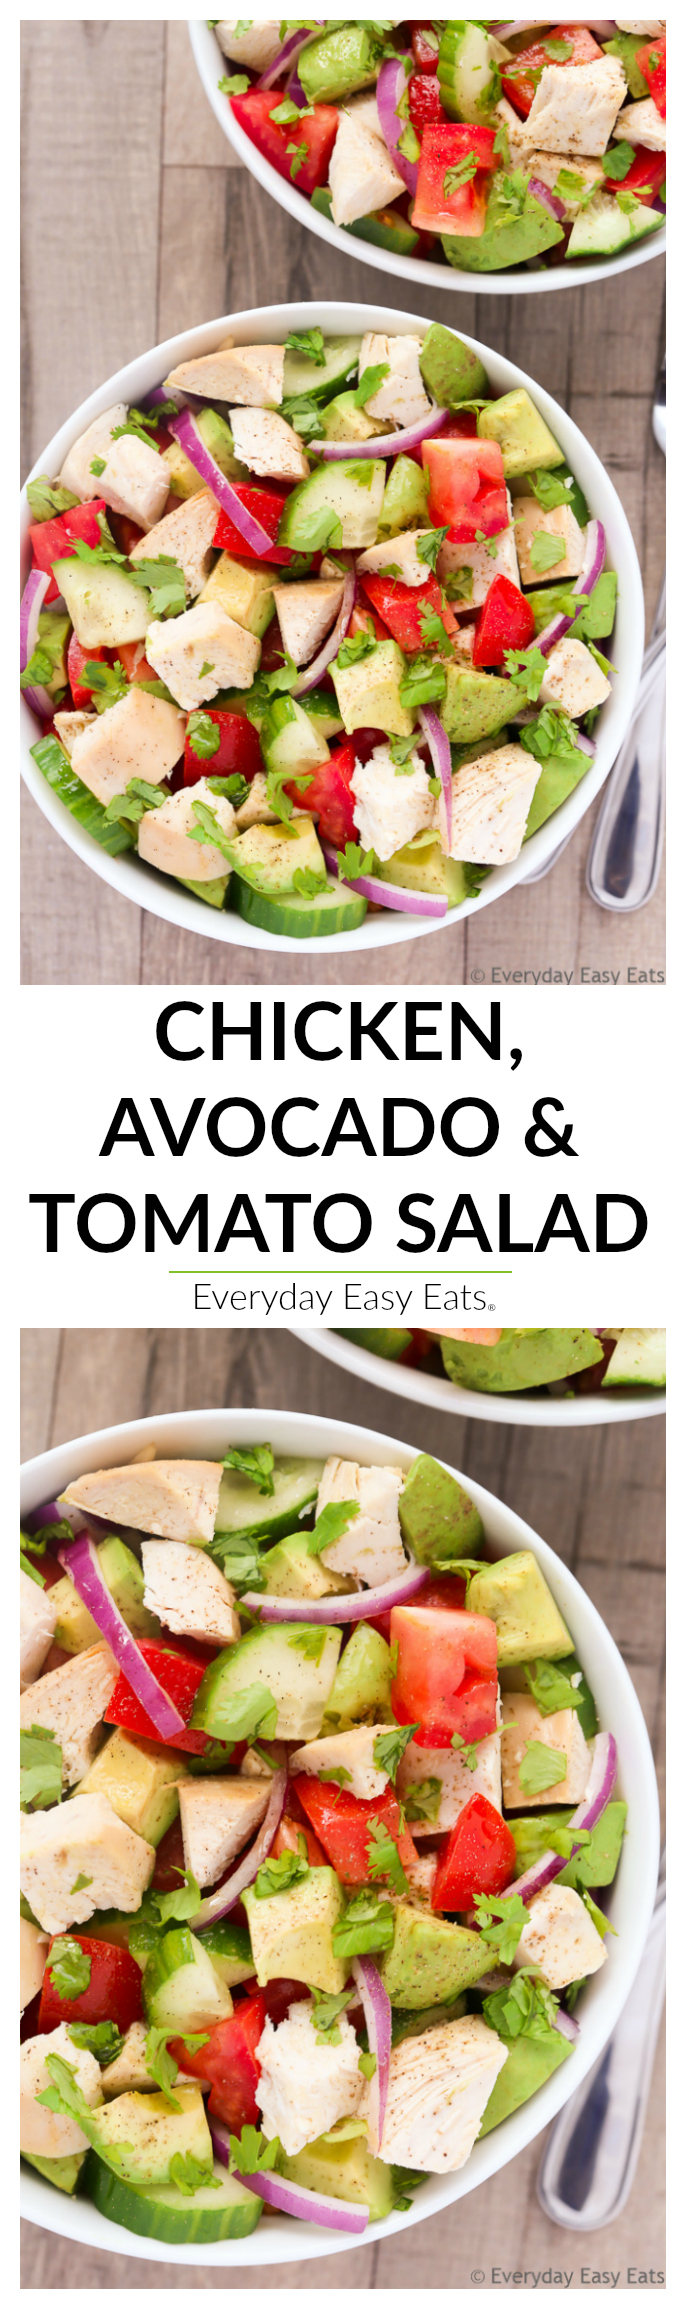 Chicken Avocado Salad - This easy & healthy salad recipe is ideal for a keto or low-carb diet. Perfect for lunch, dinner or meal prep!